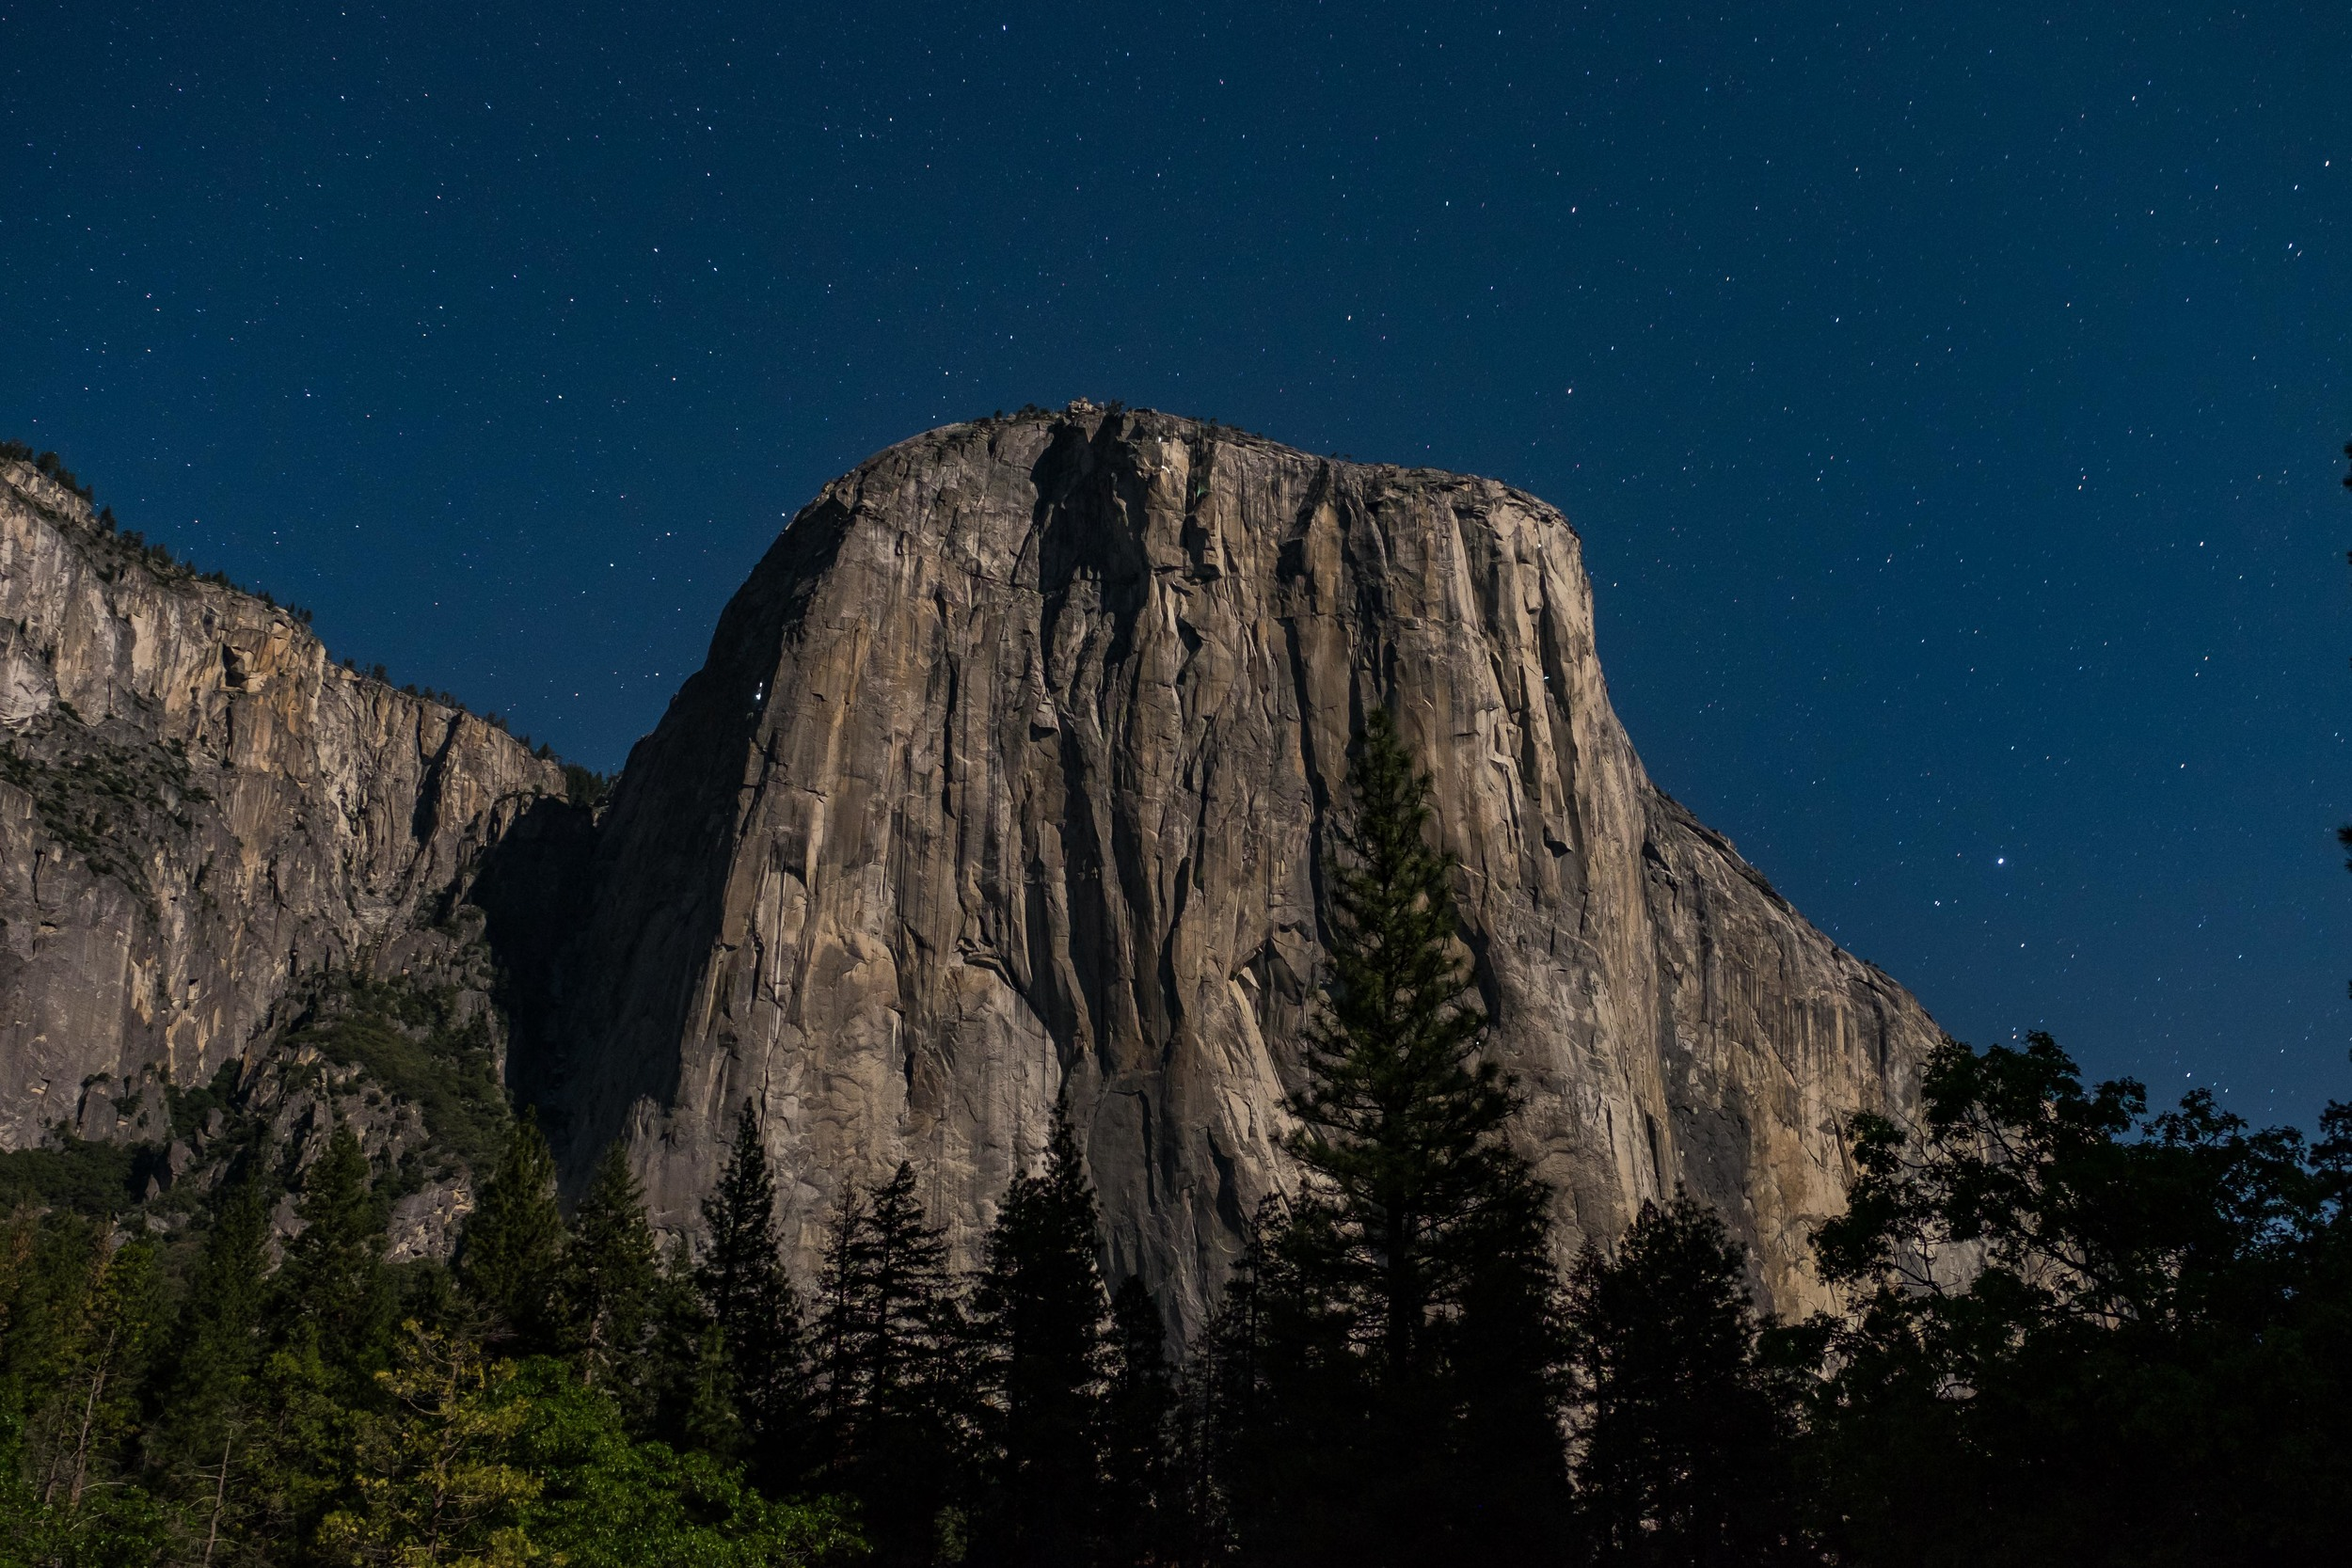 Yosemite's El Capitan at night. If you look closely, you can see climbers bivied up (i.e., sleeping in suspended sleep compartments) on the sheer face of the rock formation illuminated by small lanterns.